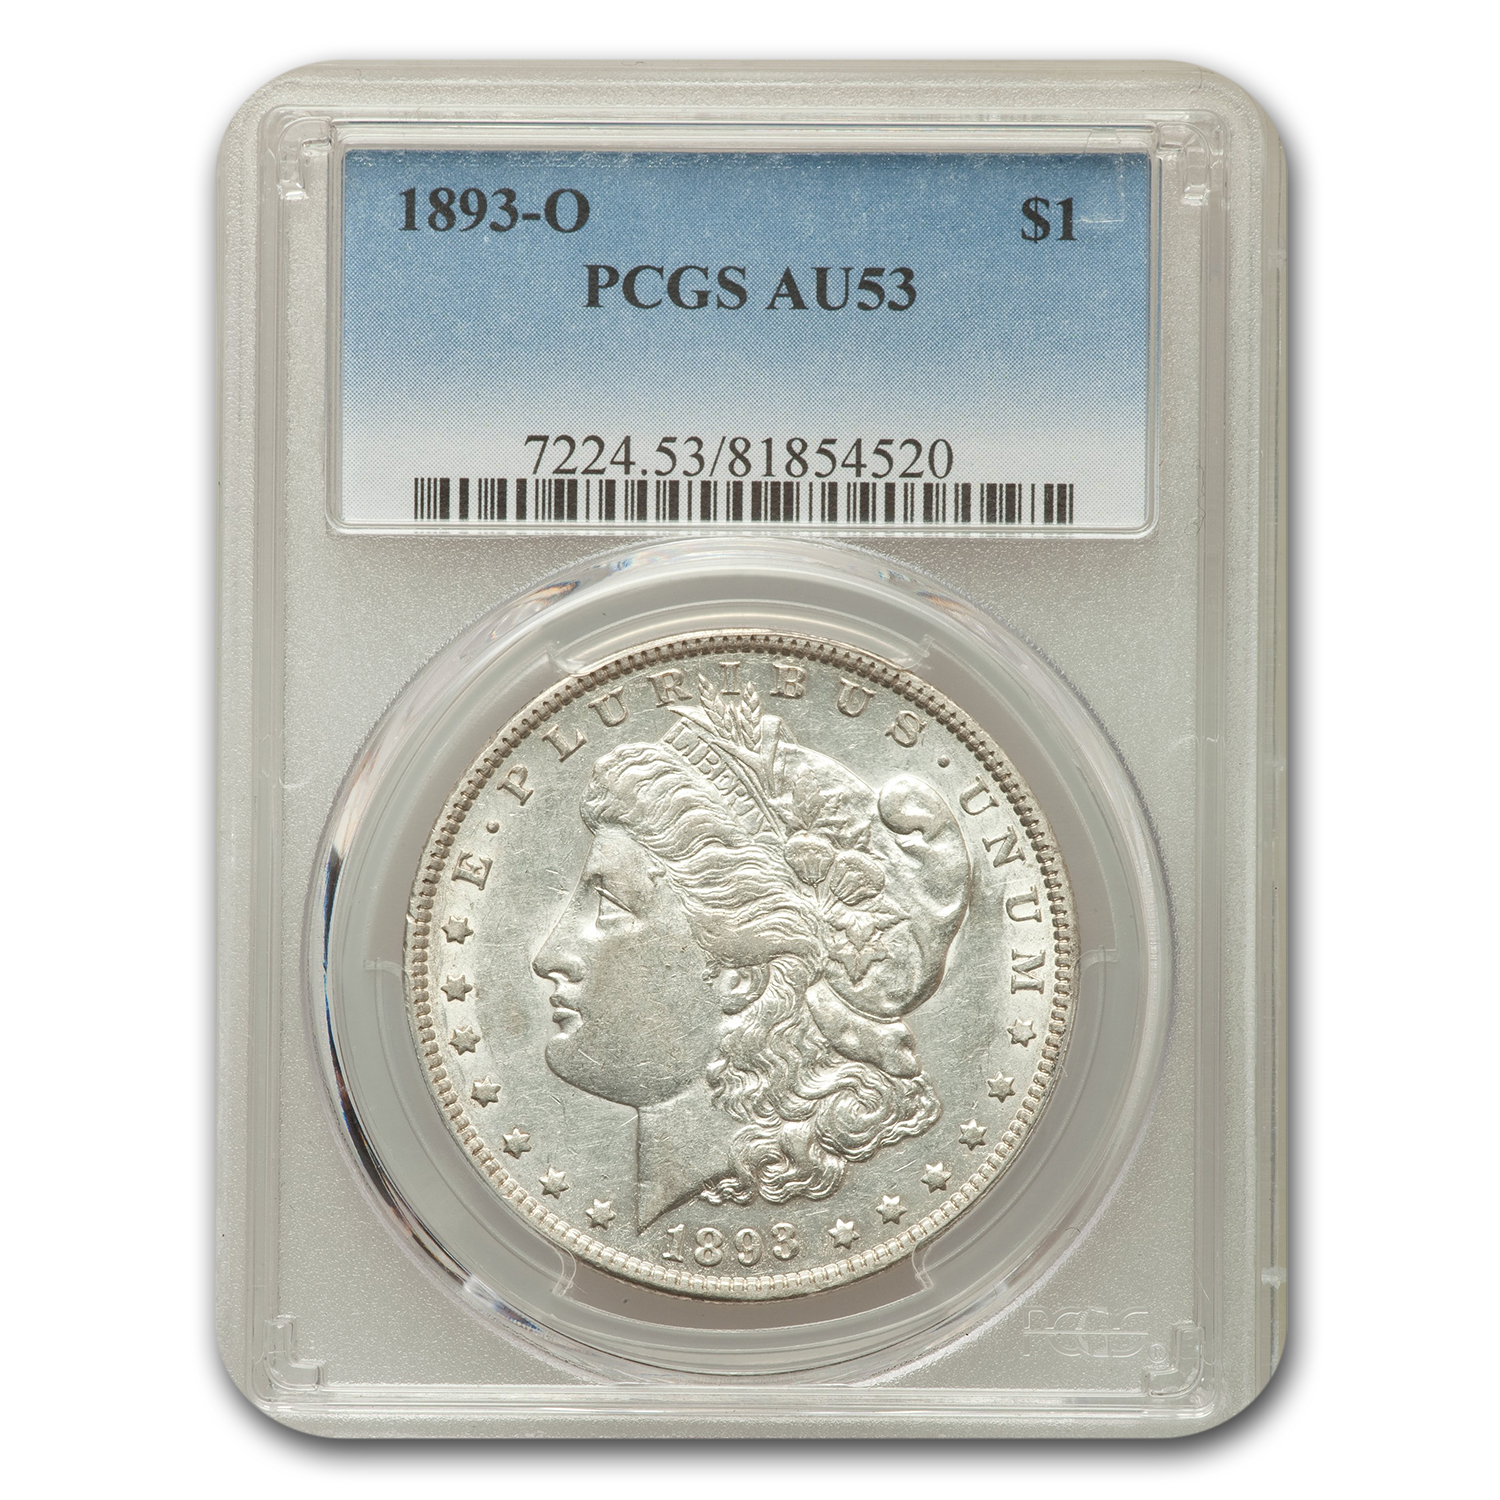 1893 $1 Morgan Dollar Almost unc - 53 PCGS